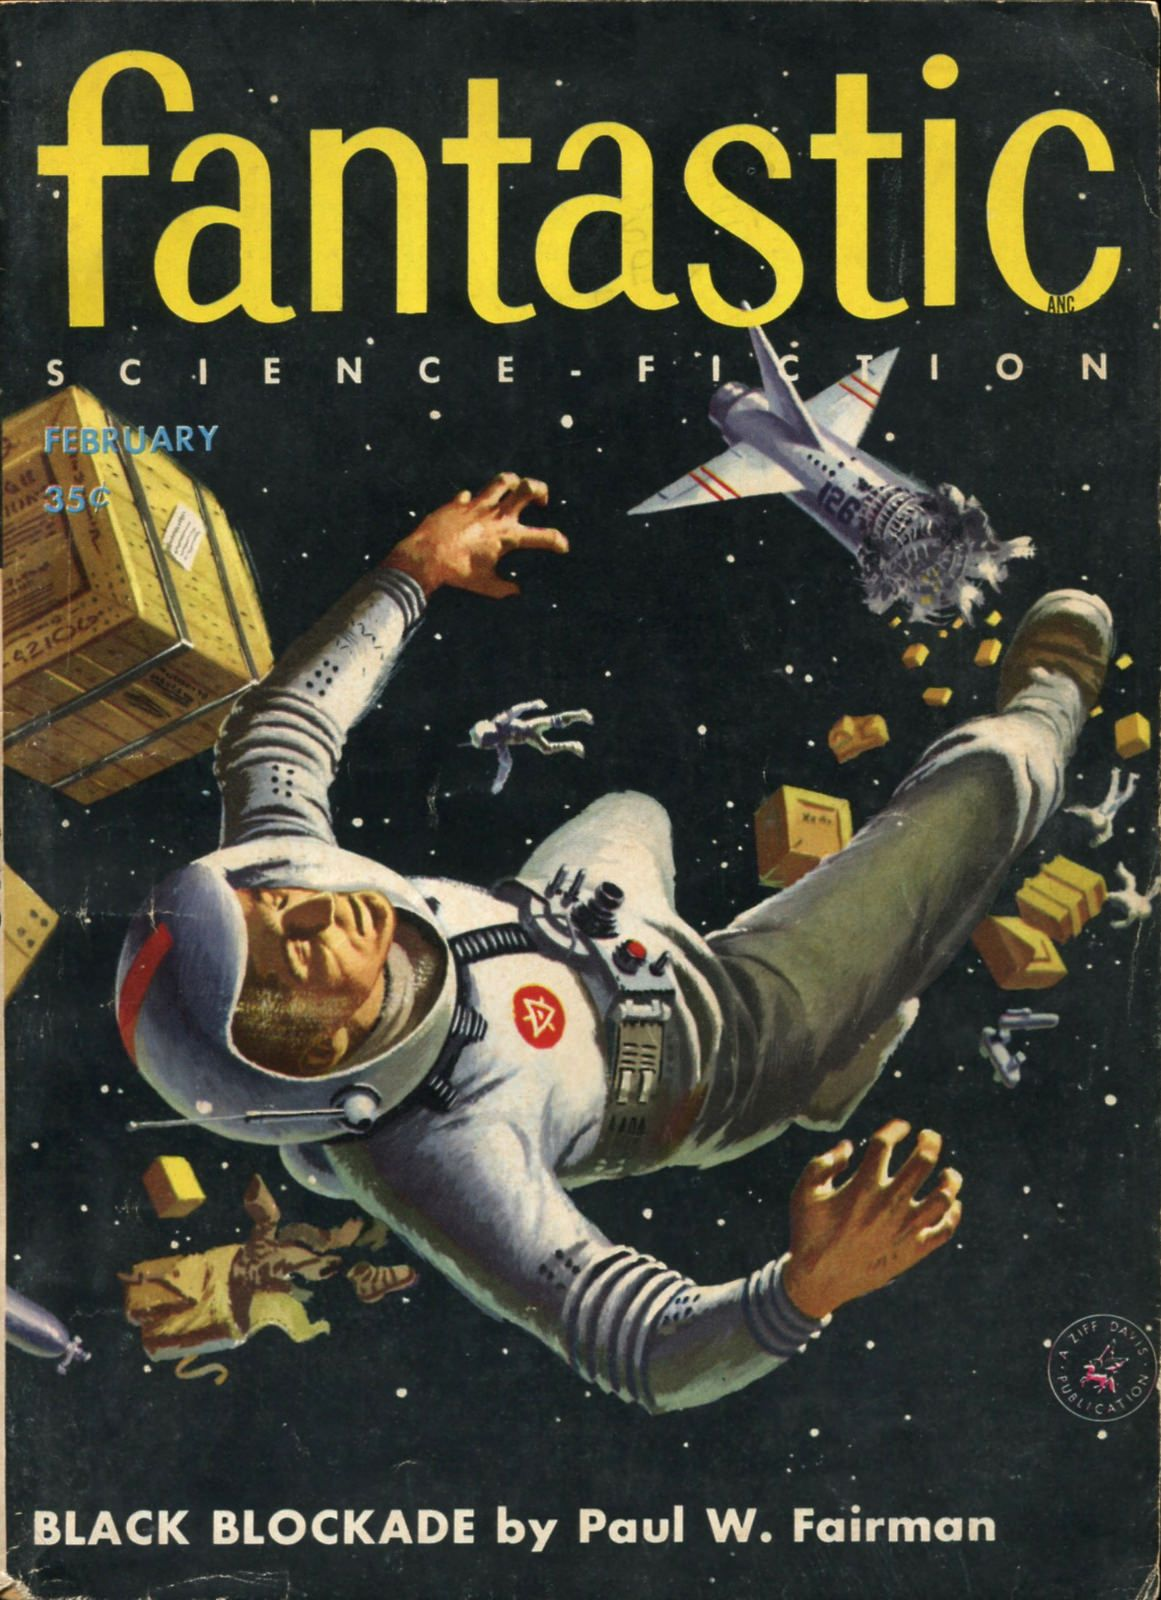 Fantastic vol 5 no 1, February 1956. Cover by Ed Valigursky., vintage sci fi